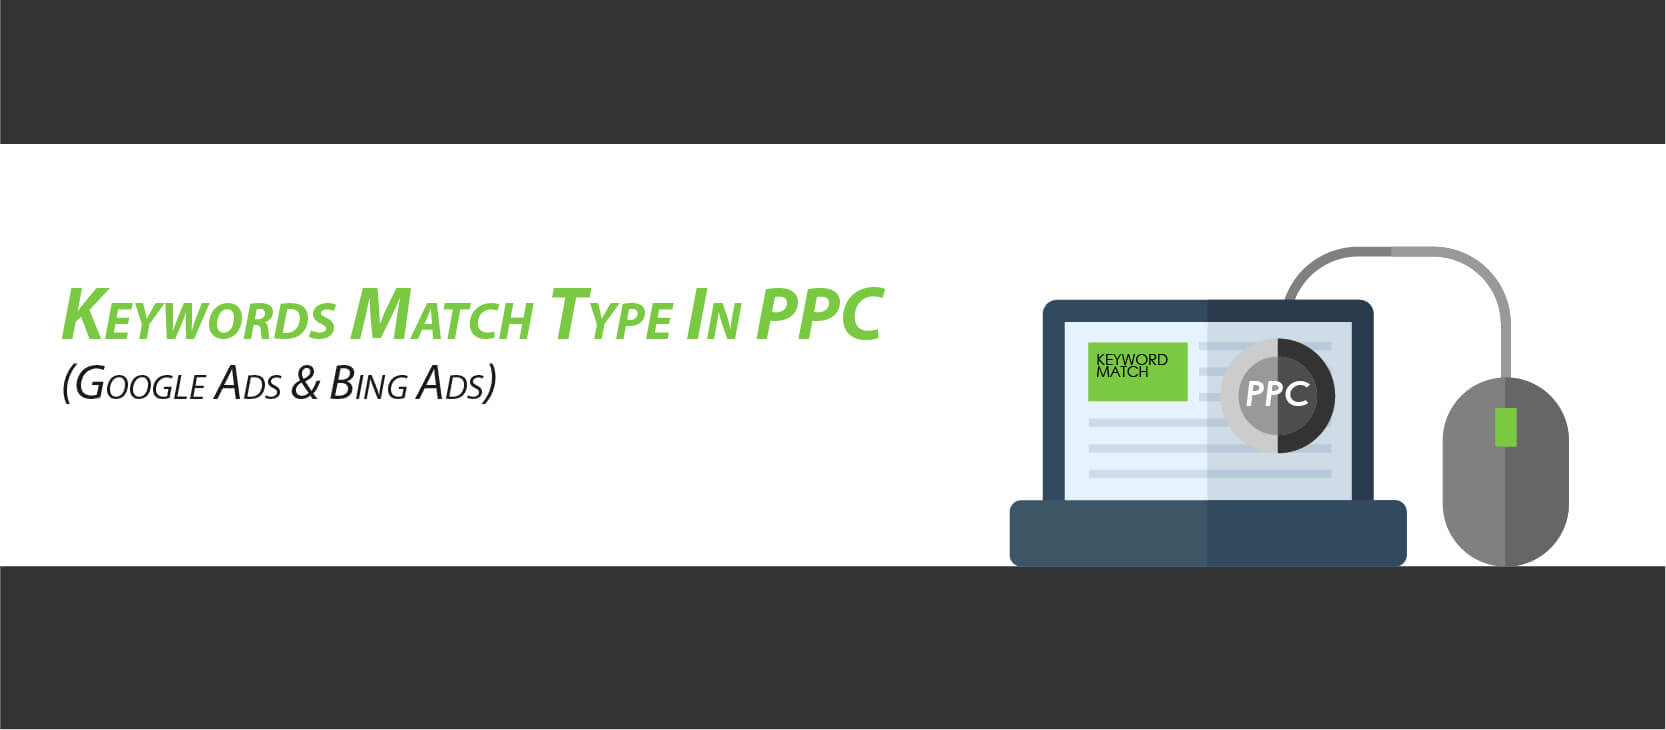 Keywords-Match-Type-in-PPC-for-Google-Ads-&-Bing-Ads-With-Examples